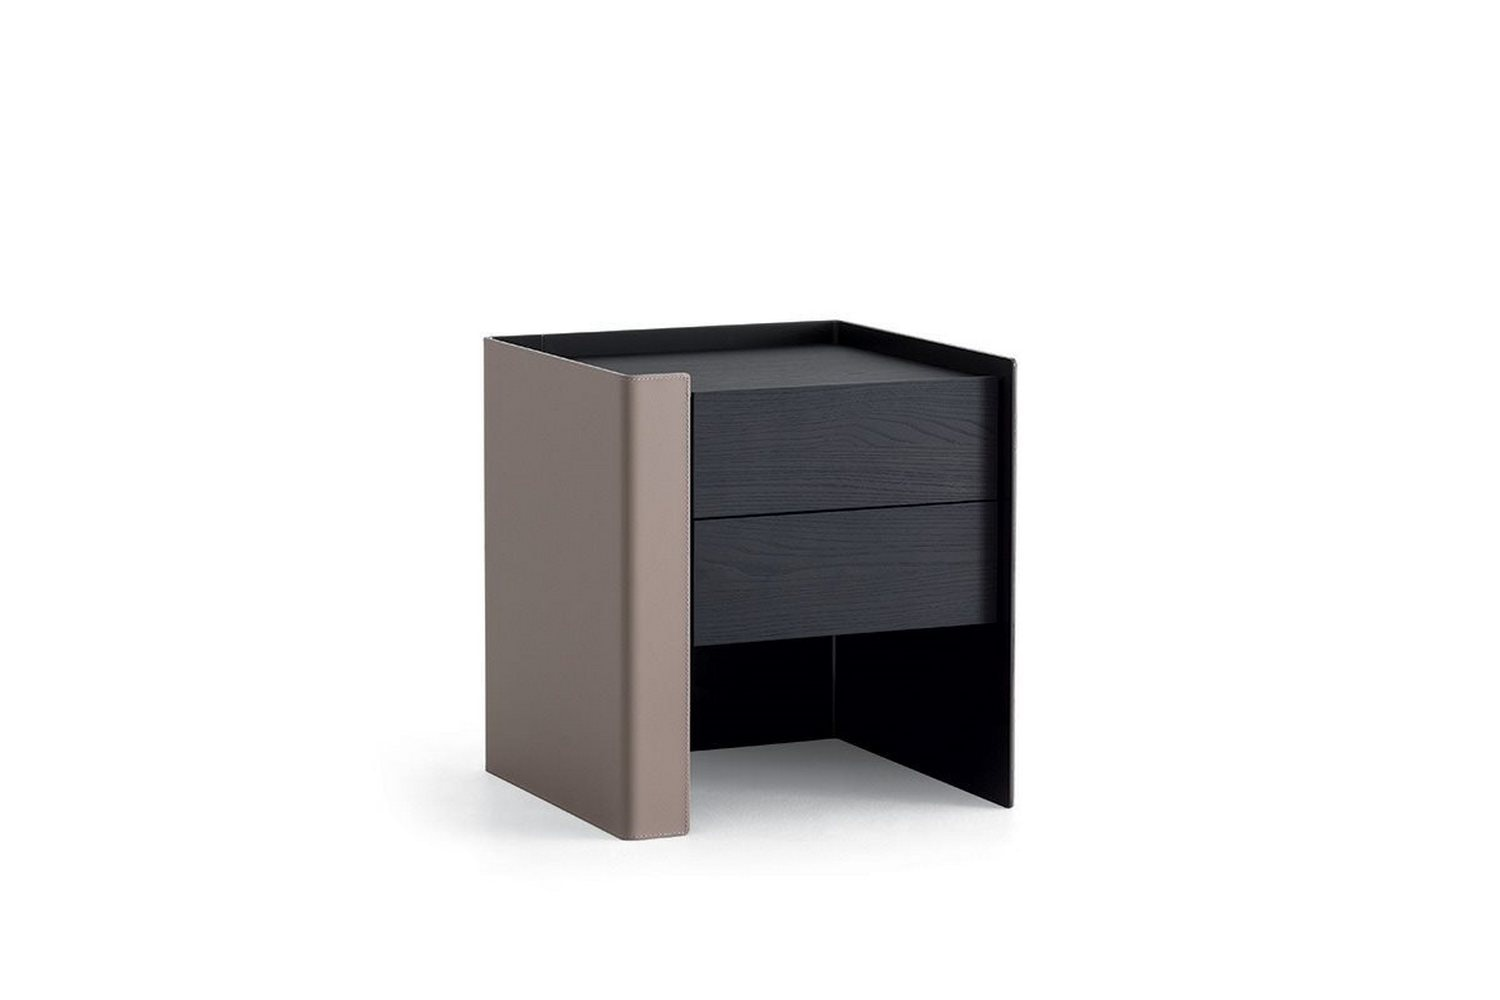 Chloe Bedside Table by Carlo Colombo for Poliform